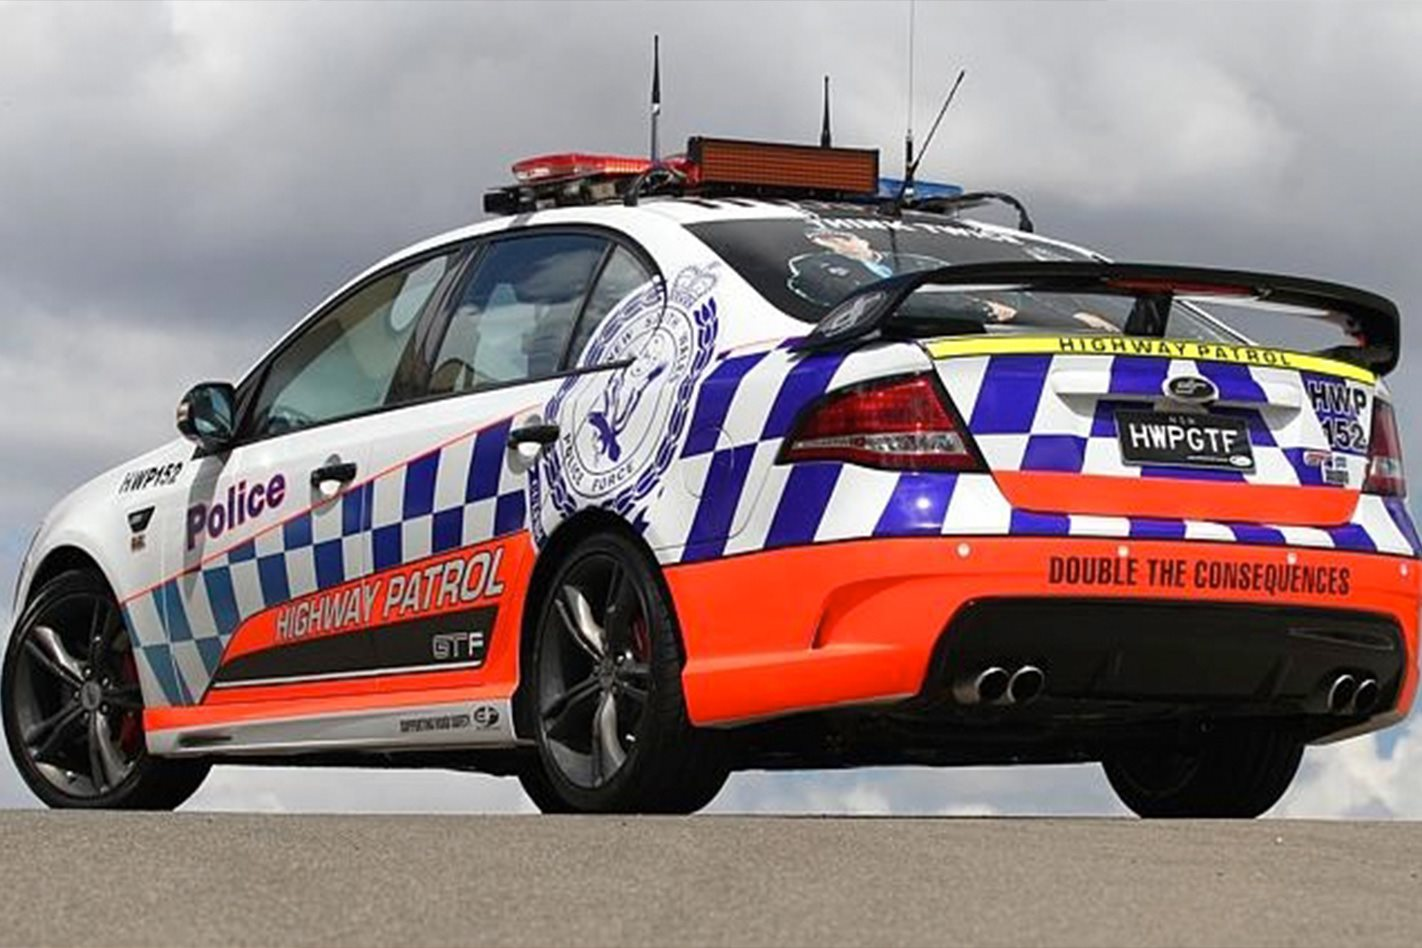 NSW Highway Patrol FPV GT F  rear